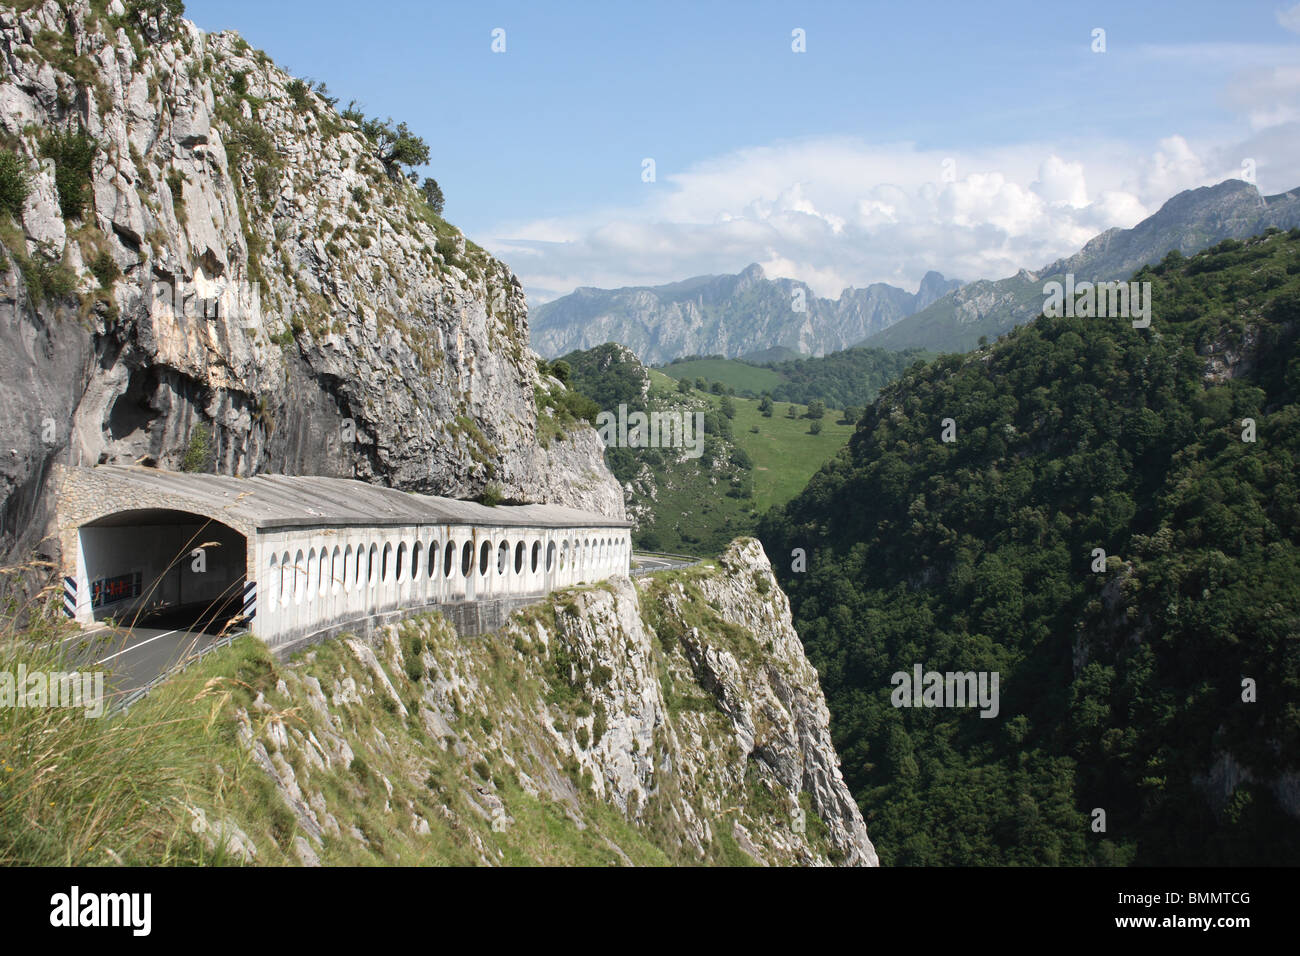 Road tunnel high in the Picos de Europa on the AS-114 near Ortiguero, Asturias, Spain, with forested hillside and - Stock Image